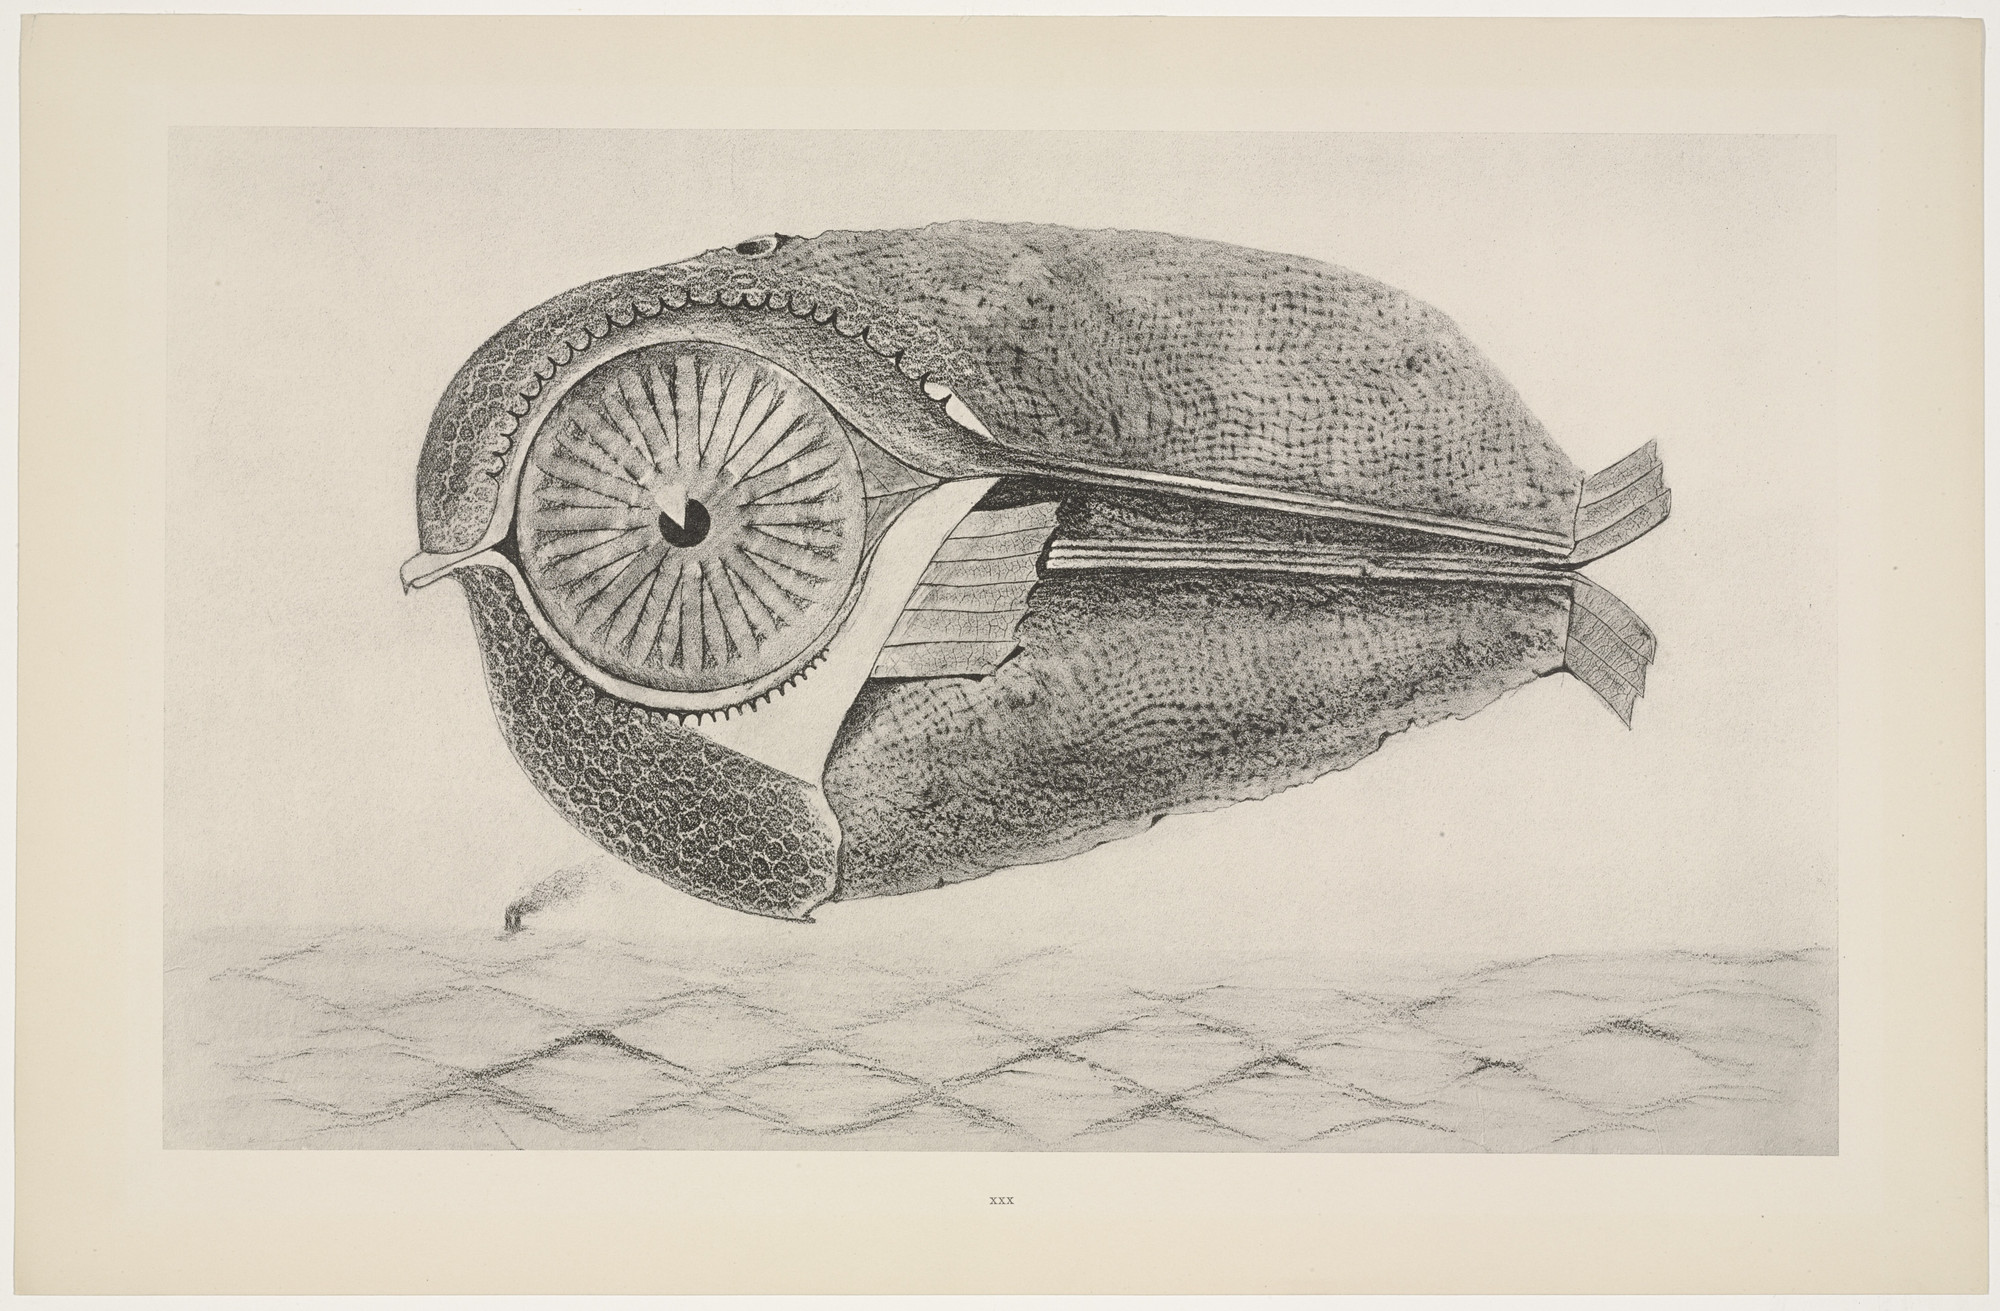 Max Ernst. The Fugitive (L'Évadé) from Natural History (Histoire Naturelle). c. 1925, published 1926